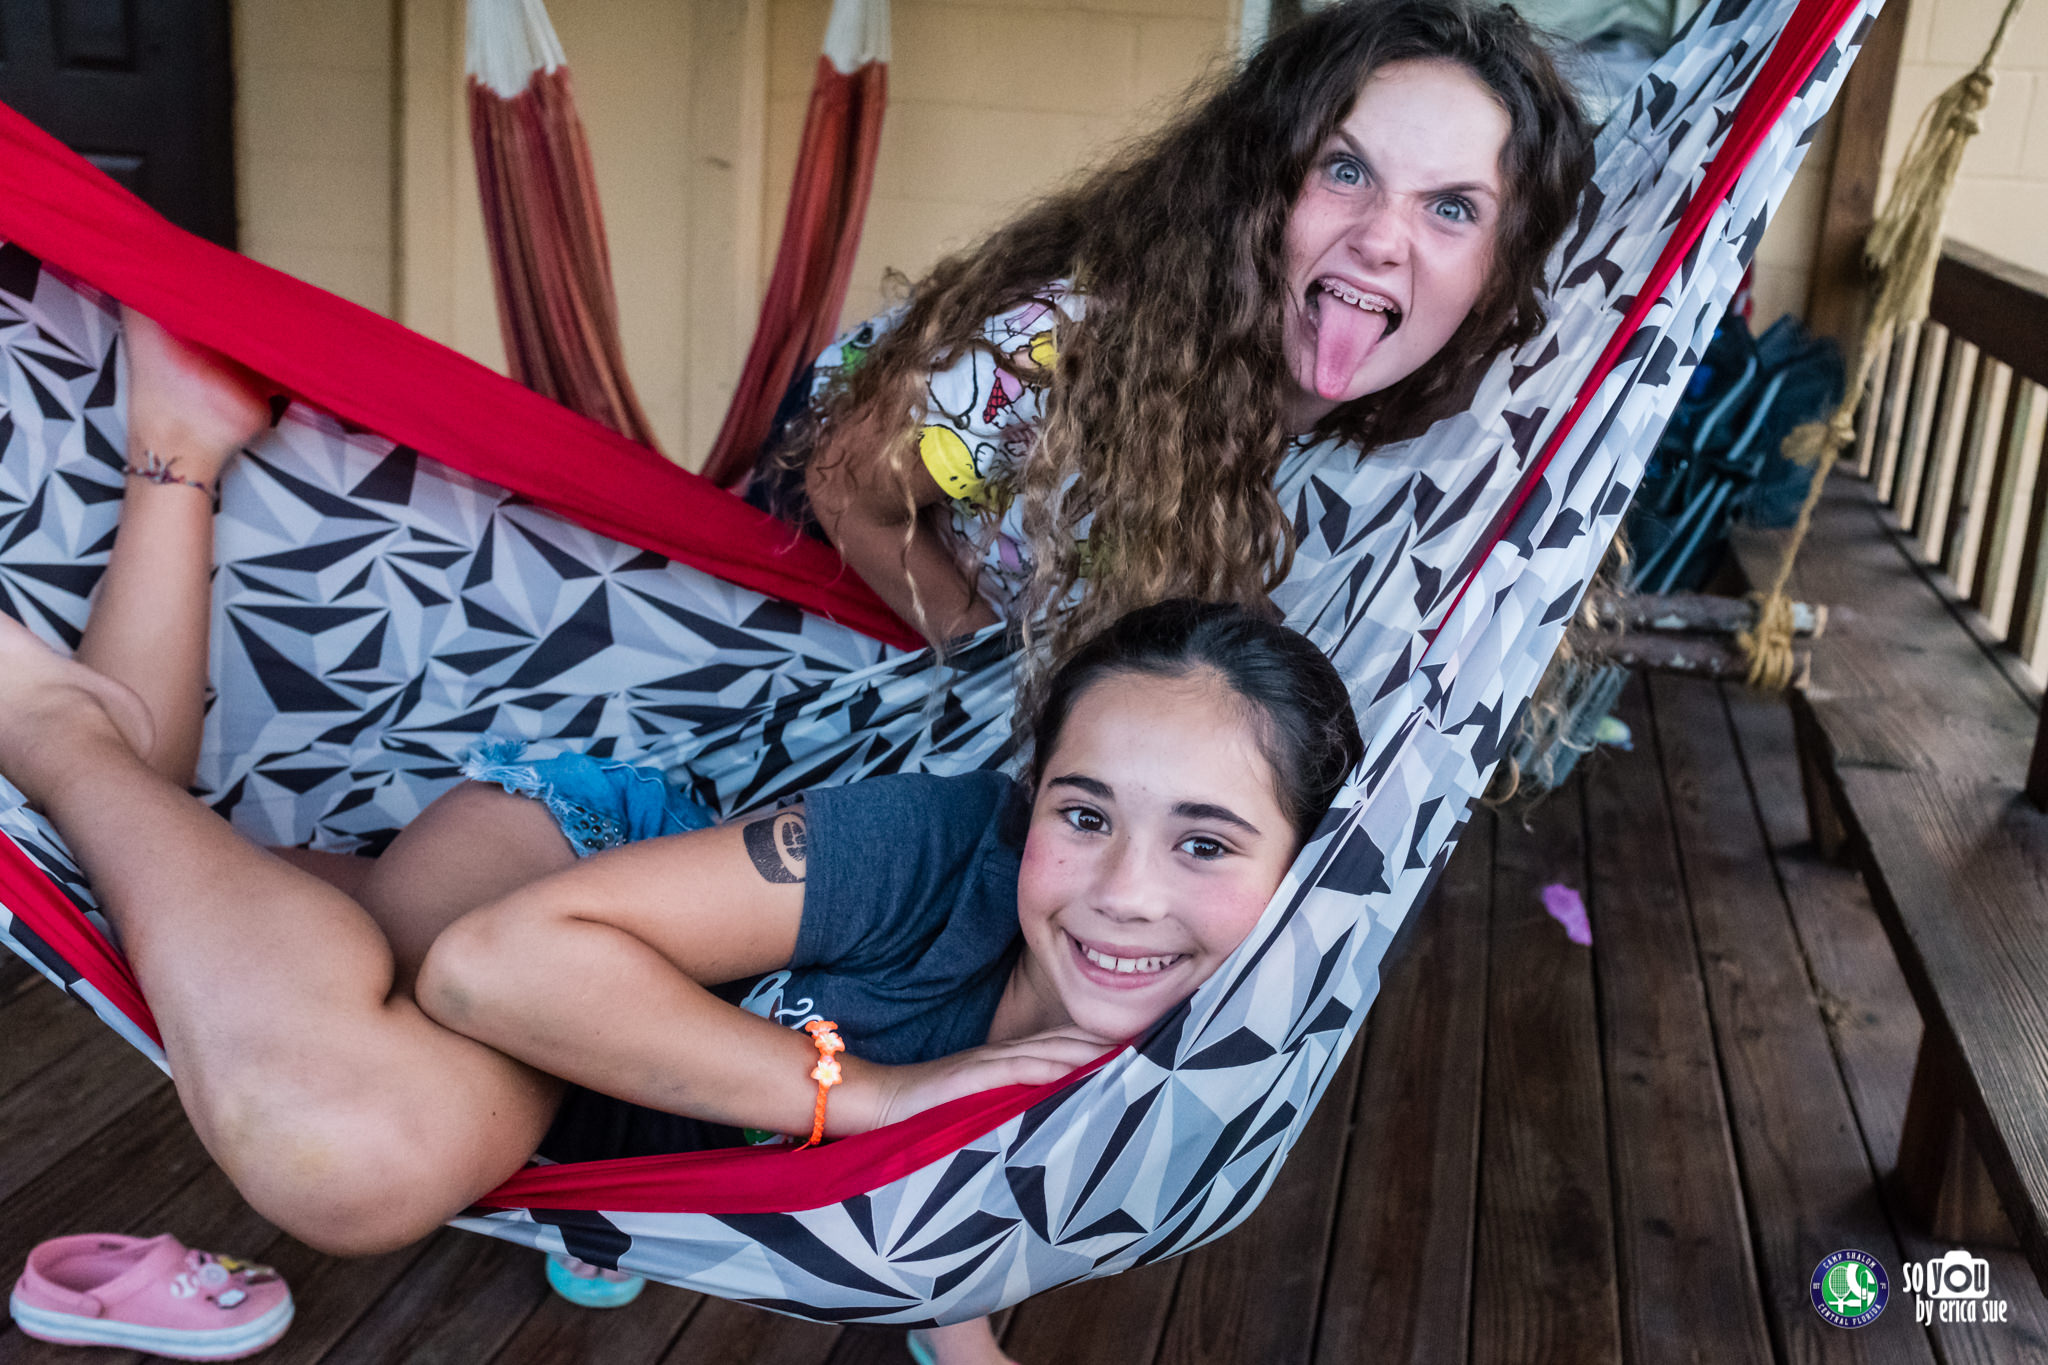 so-you-by-erica-sue-camp-shalom-central-florida-sleepaway-camp-2022.jpg